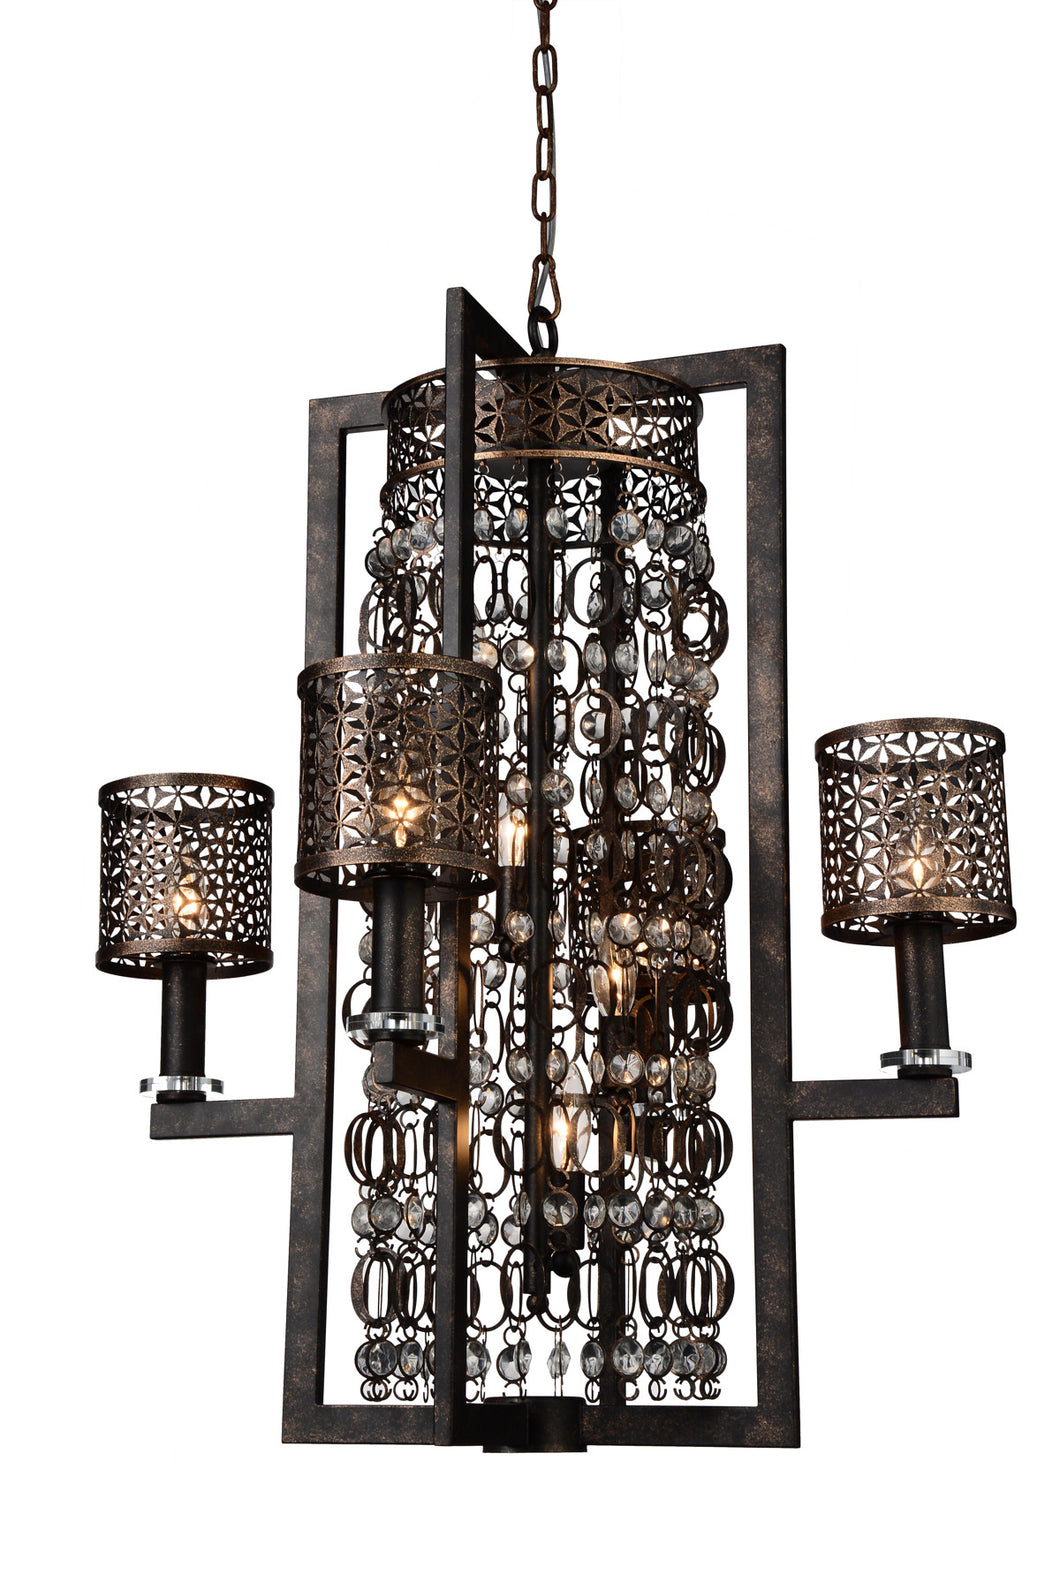 8 Light Up Chandelier with Golden Bronze finish